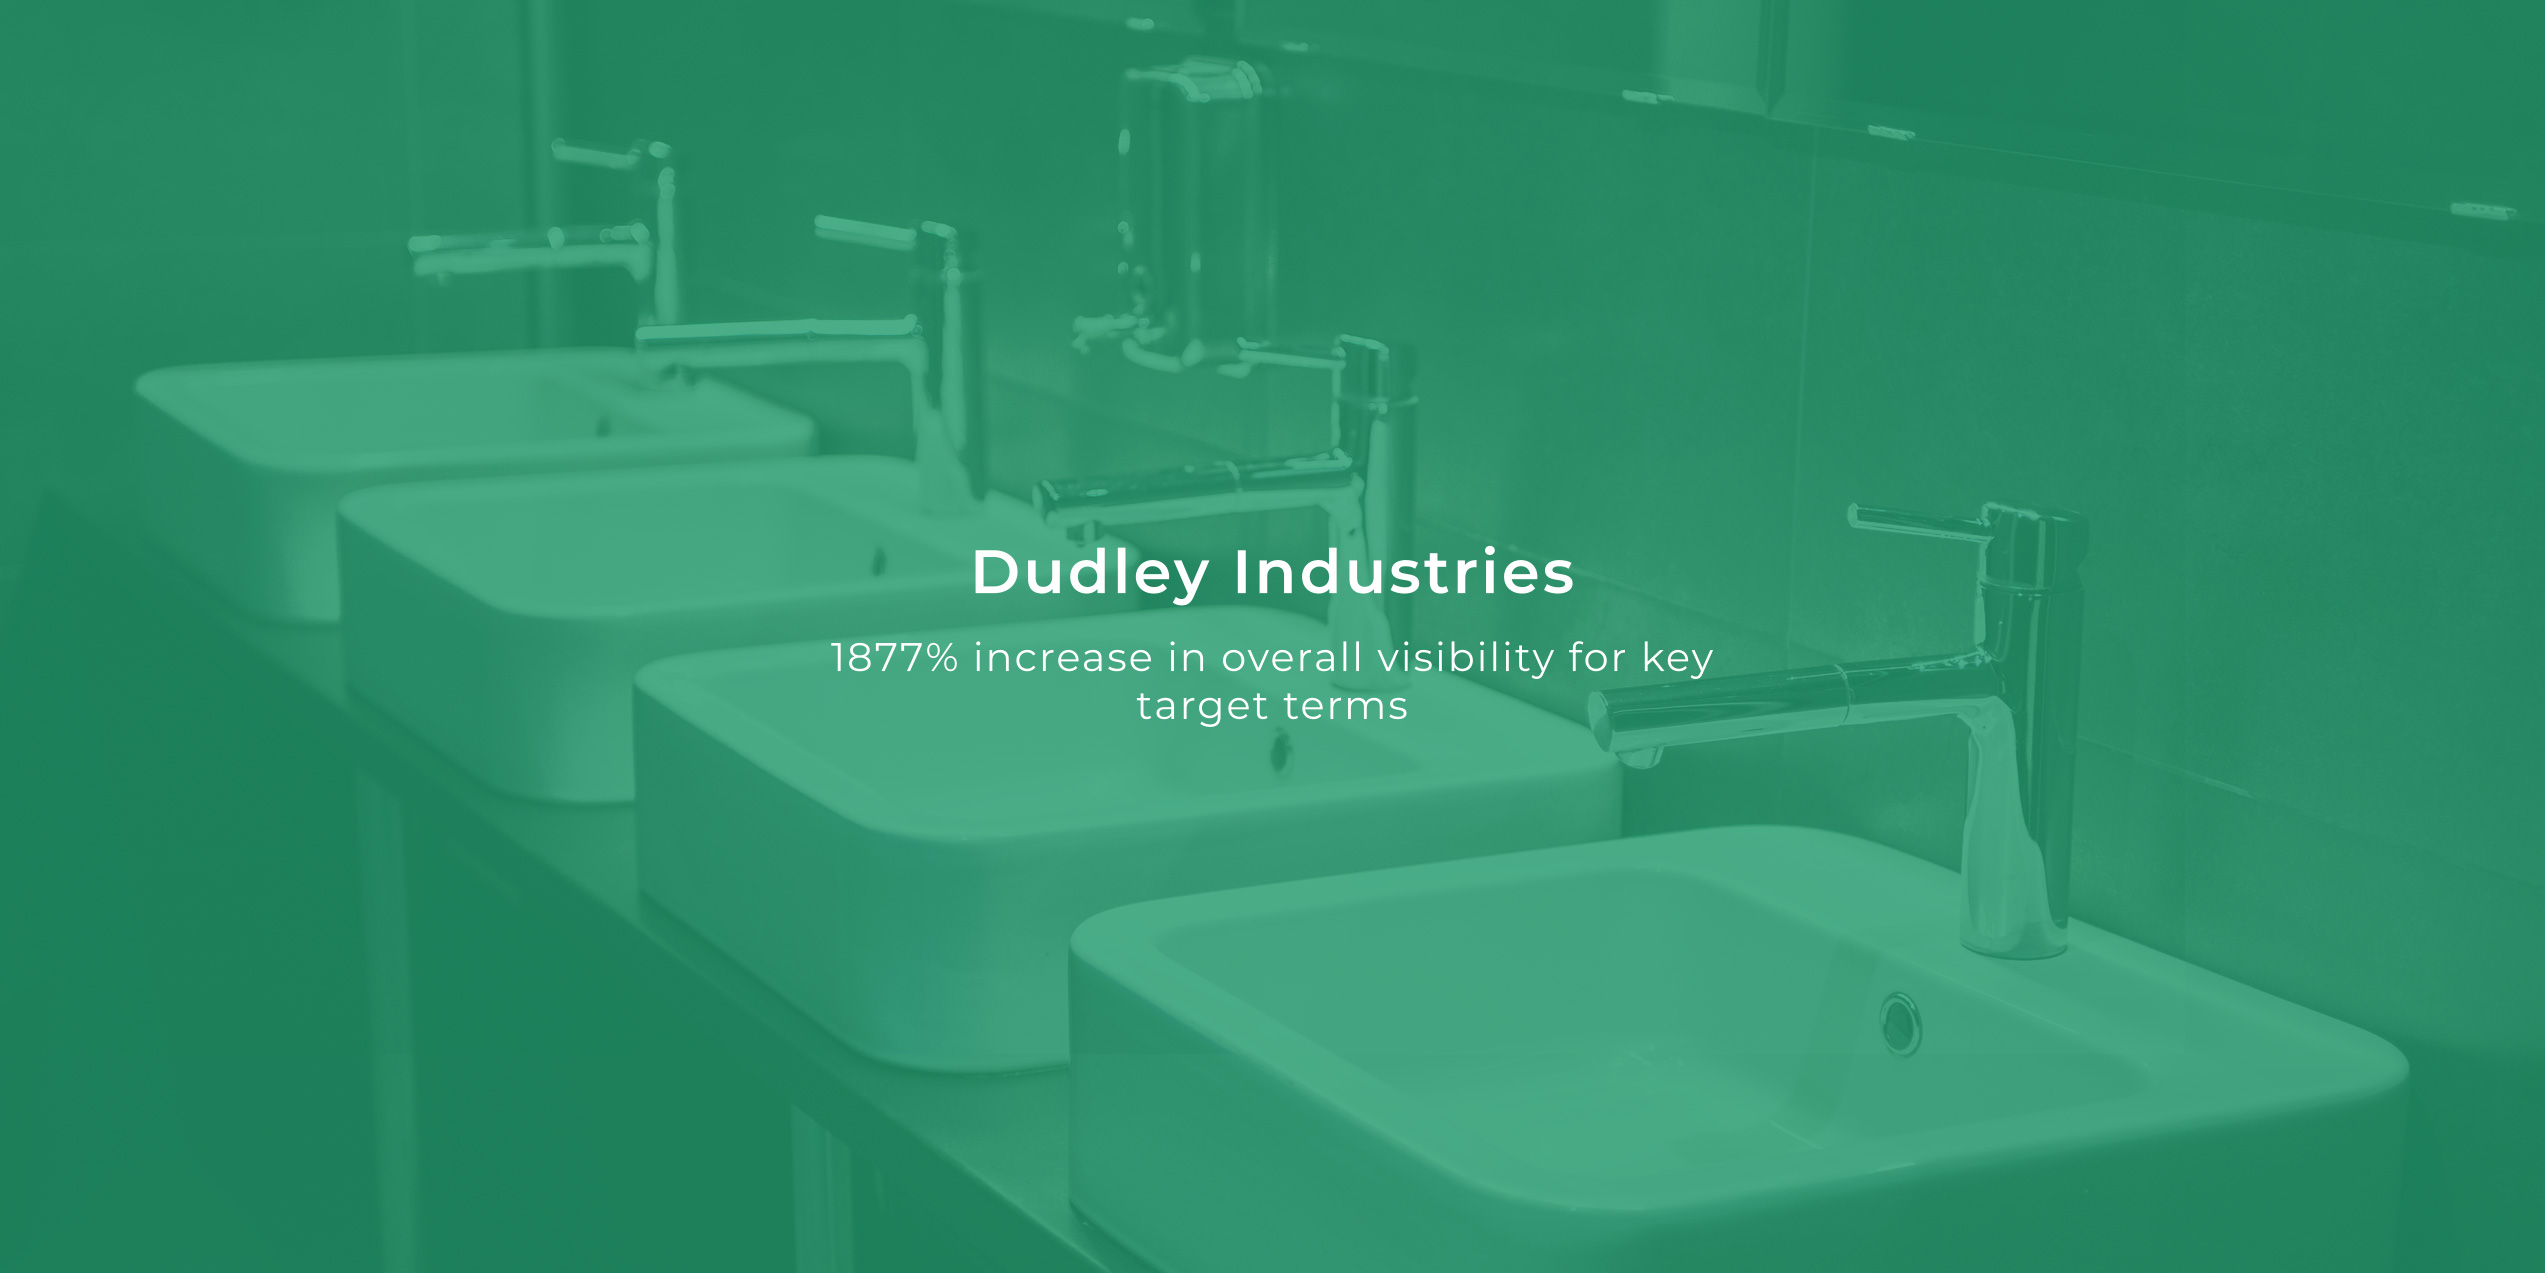 Innovation Visual Client Dudley Industries 1877% increase in visibility banner